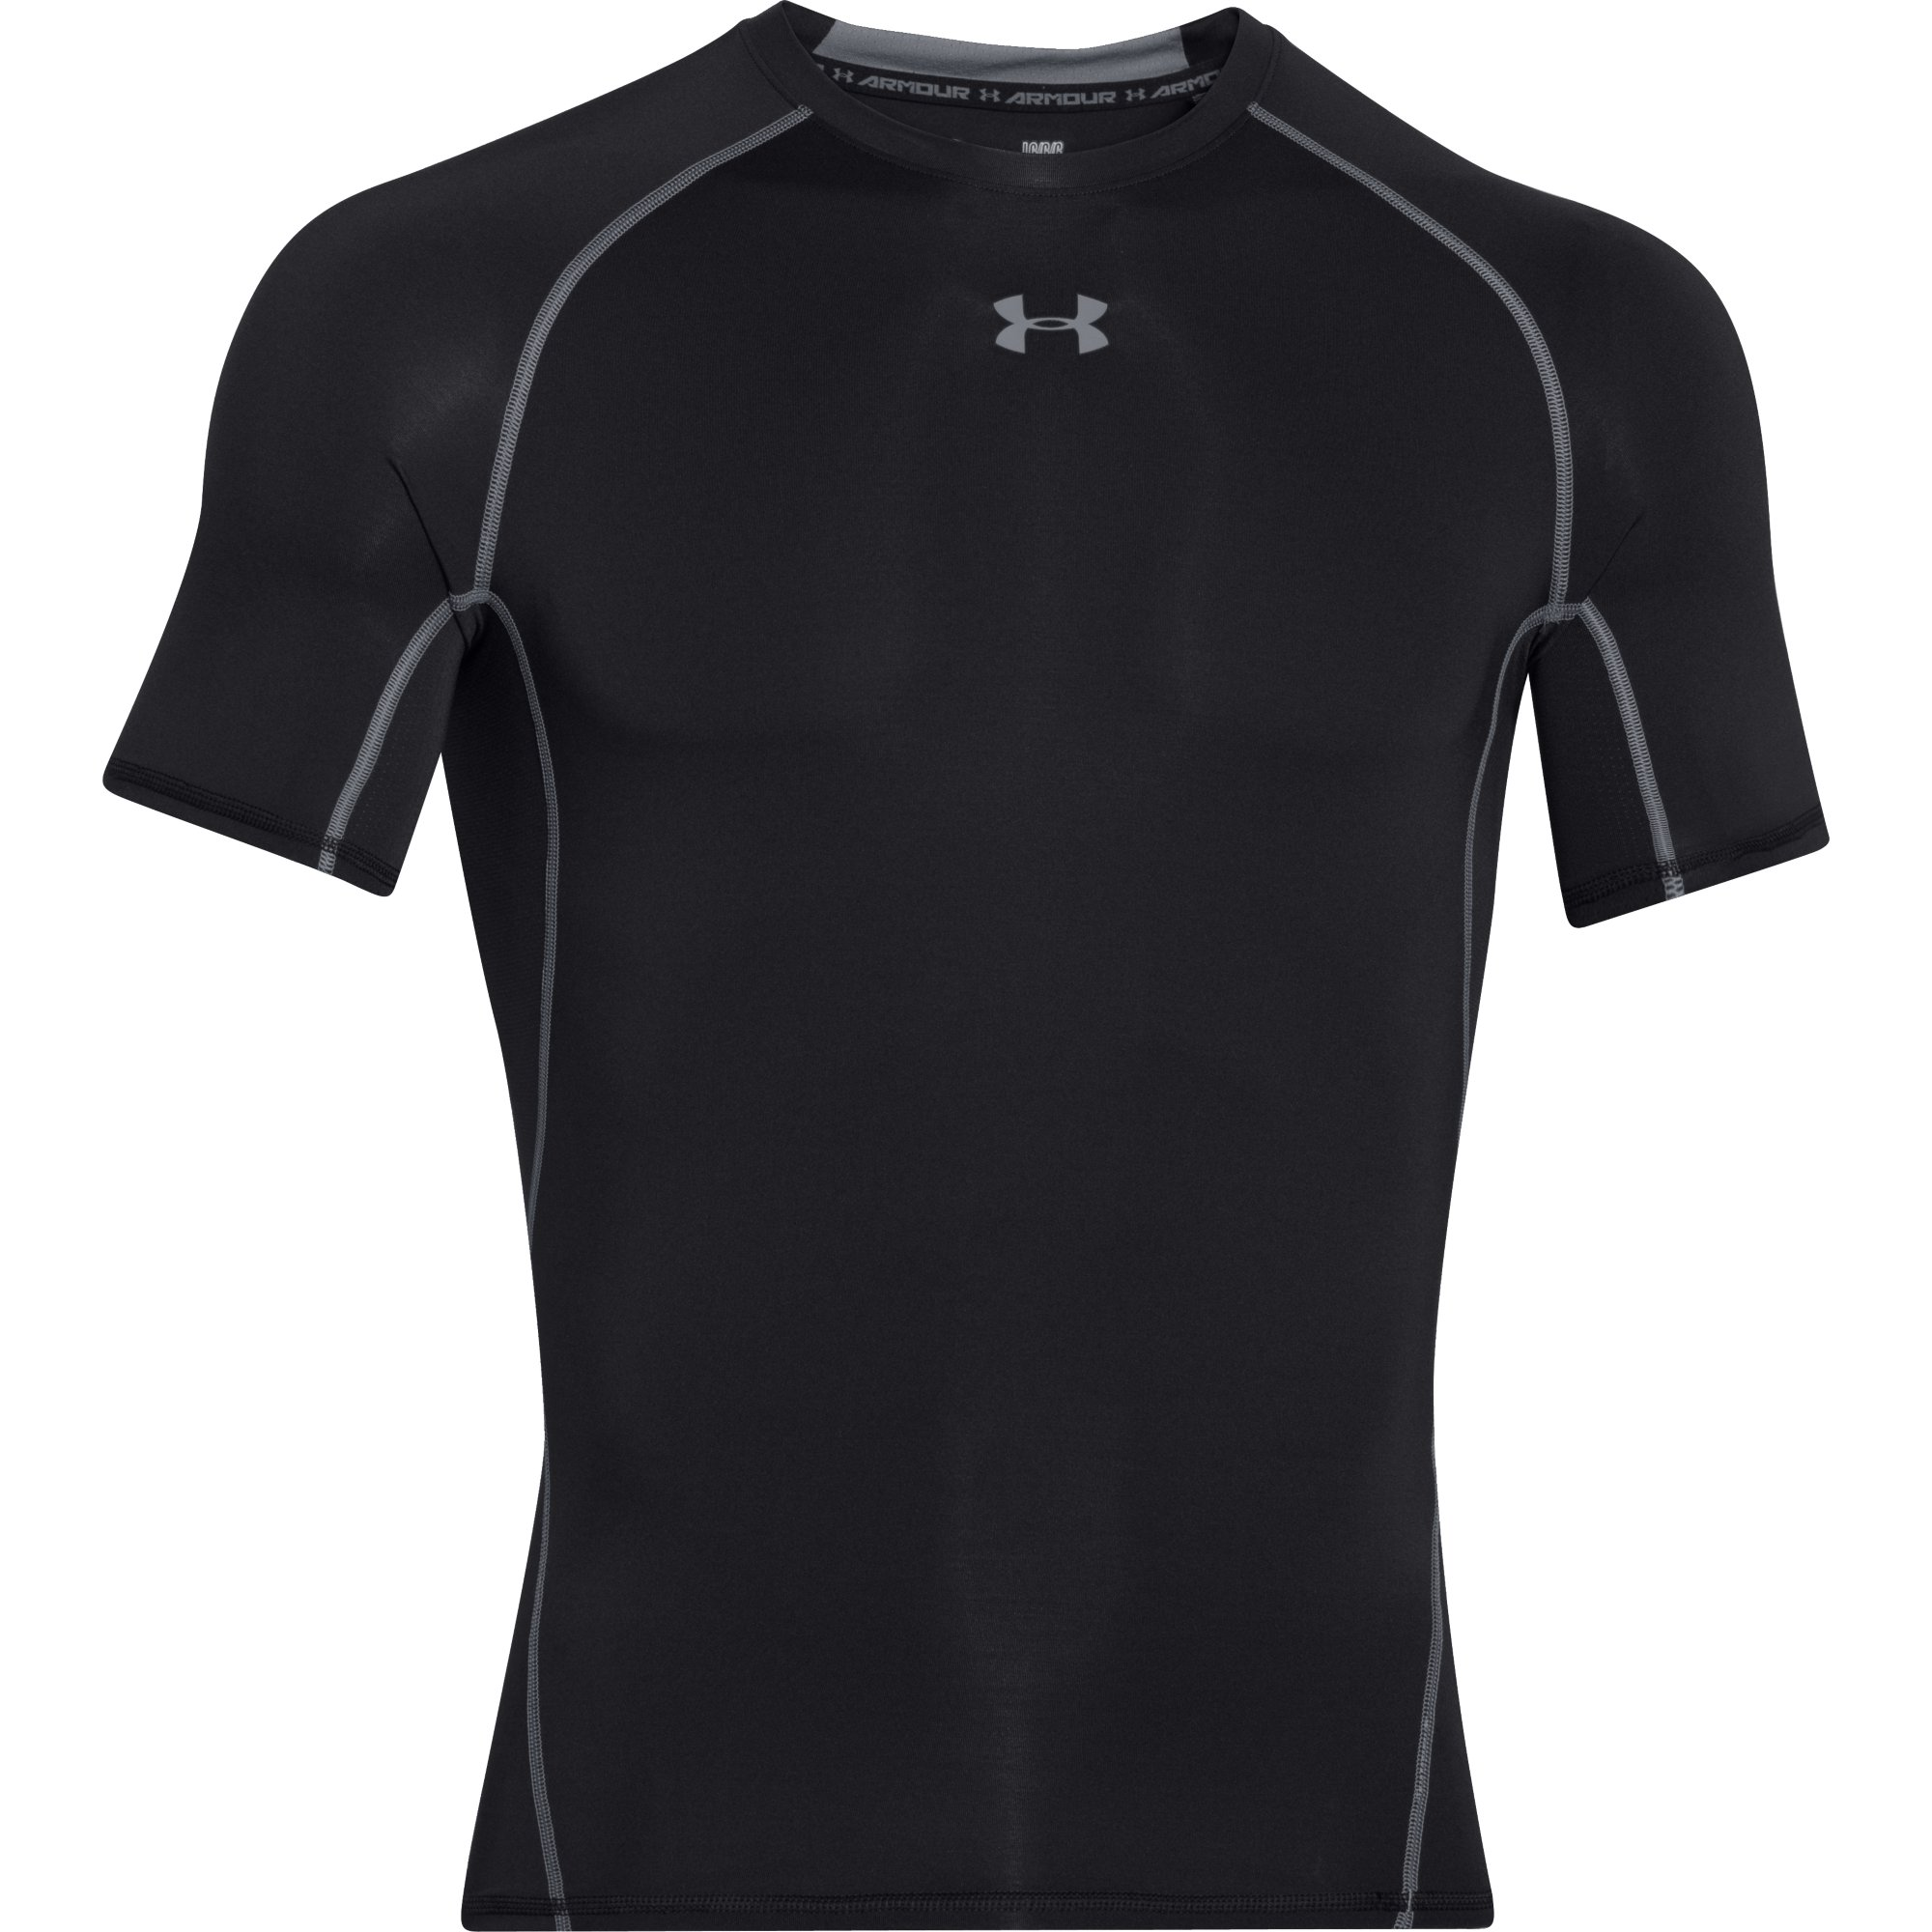 a9511bc6a Wiggle | Under Armour HeatGear Armour SS Compression Top | Compression Tops